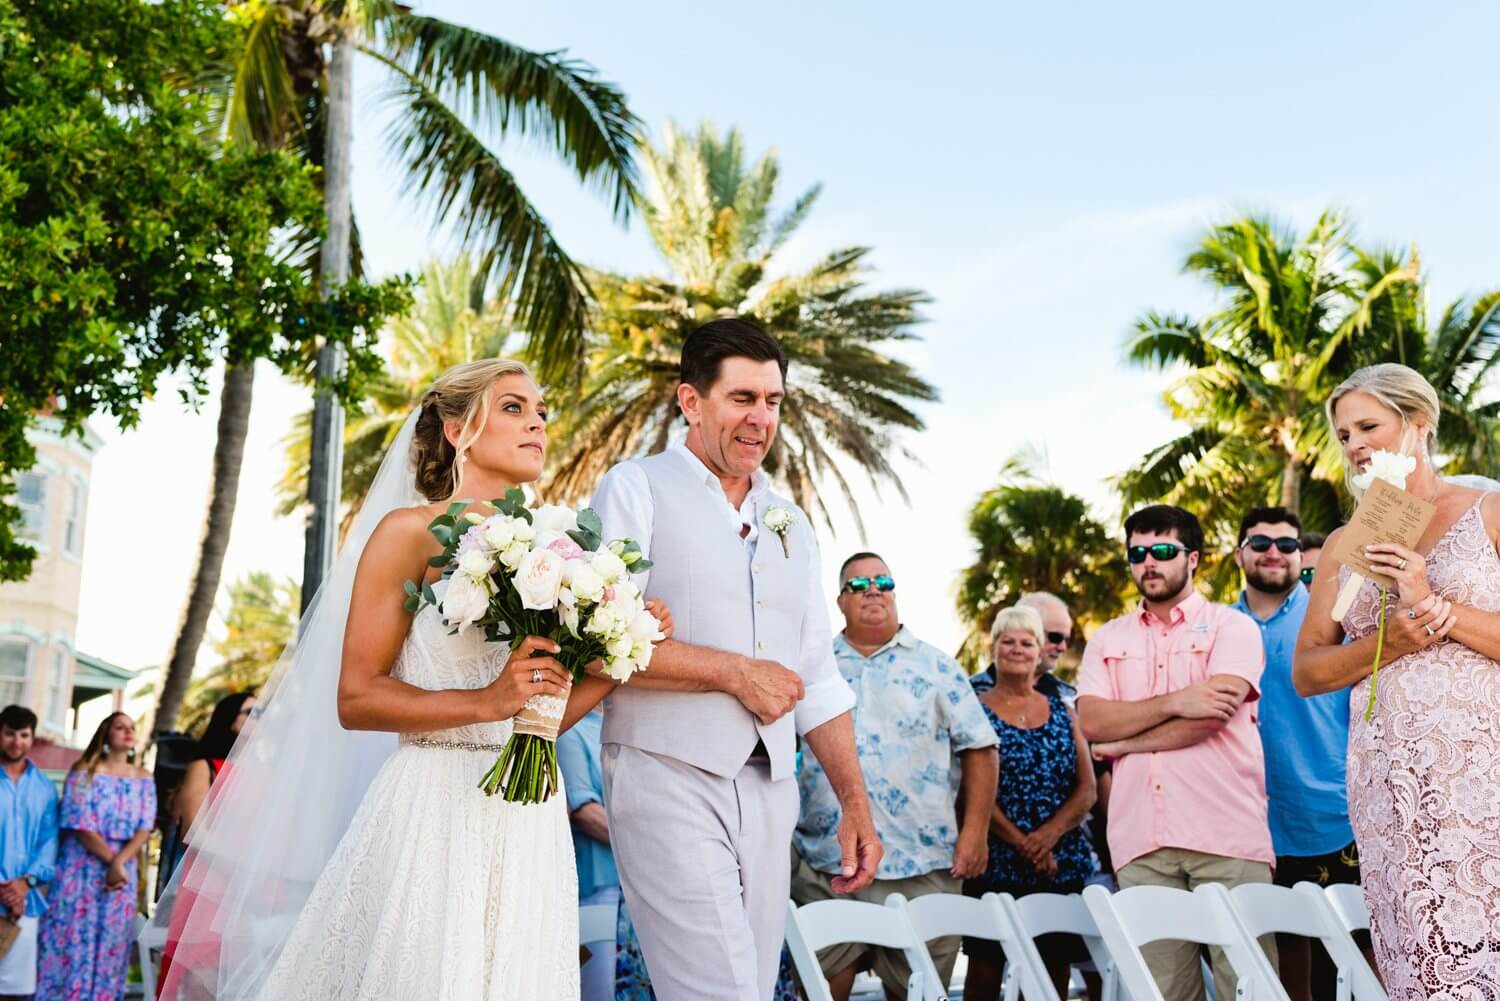 Freas Photography Southernmost House Wedding 92 - Boho Styled Key West Wedding at the Southernmost House in Key West, Florida